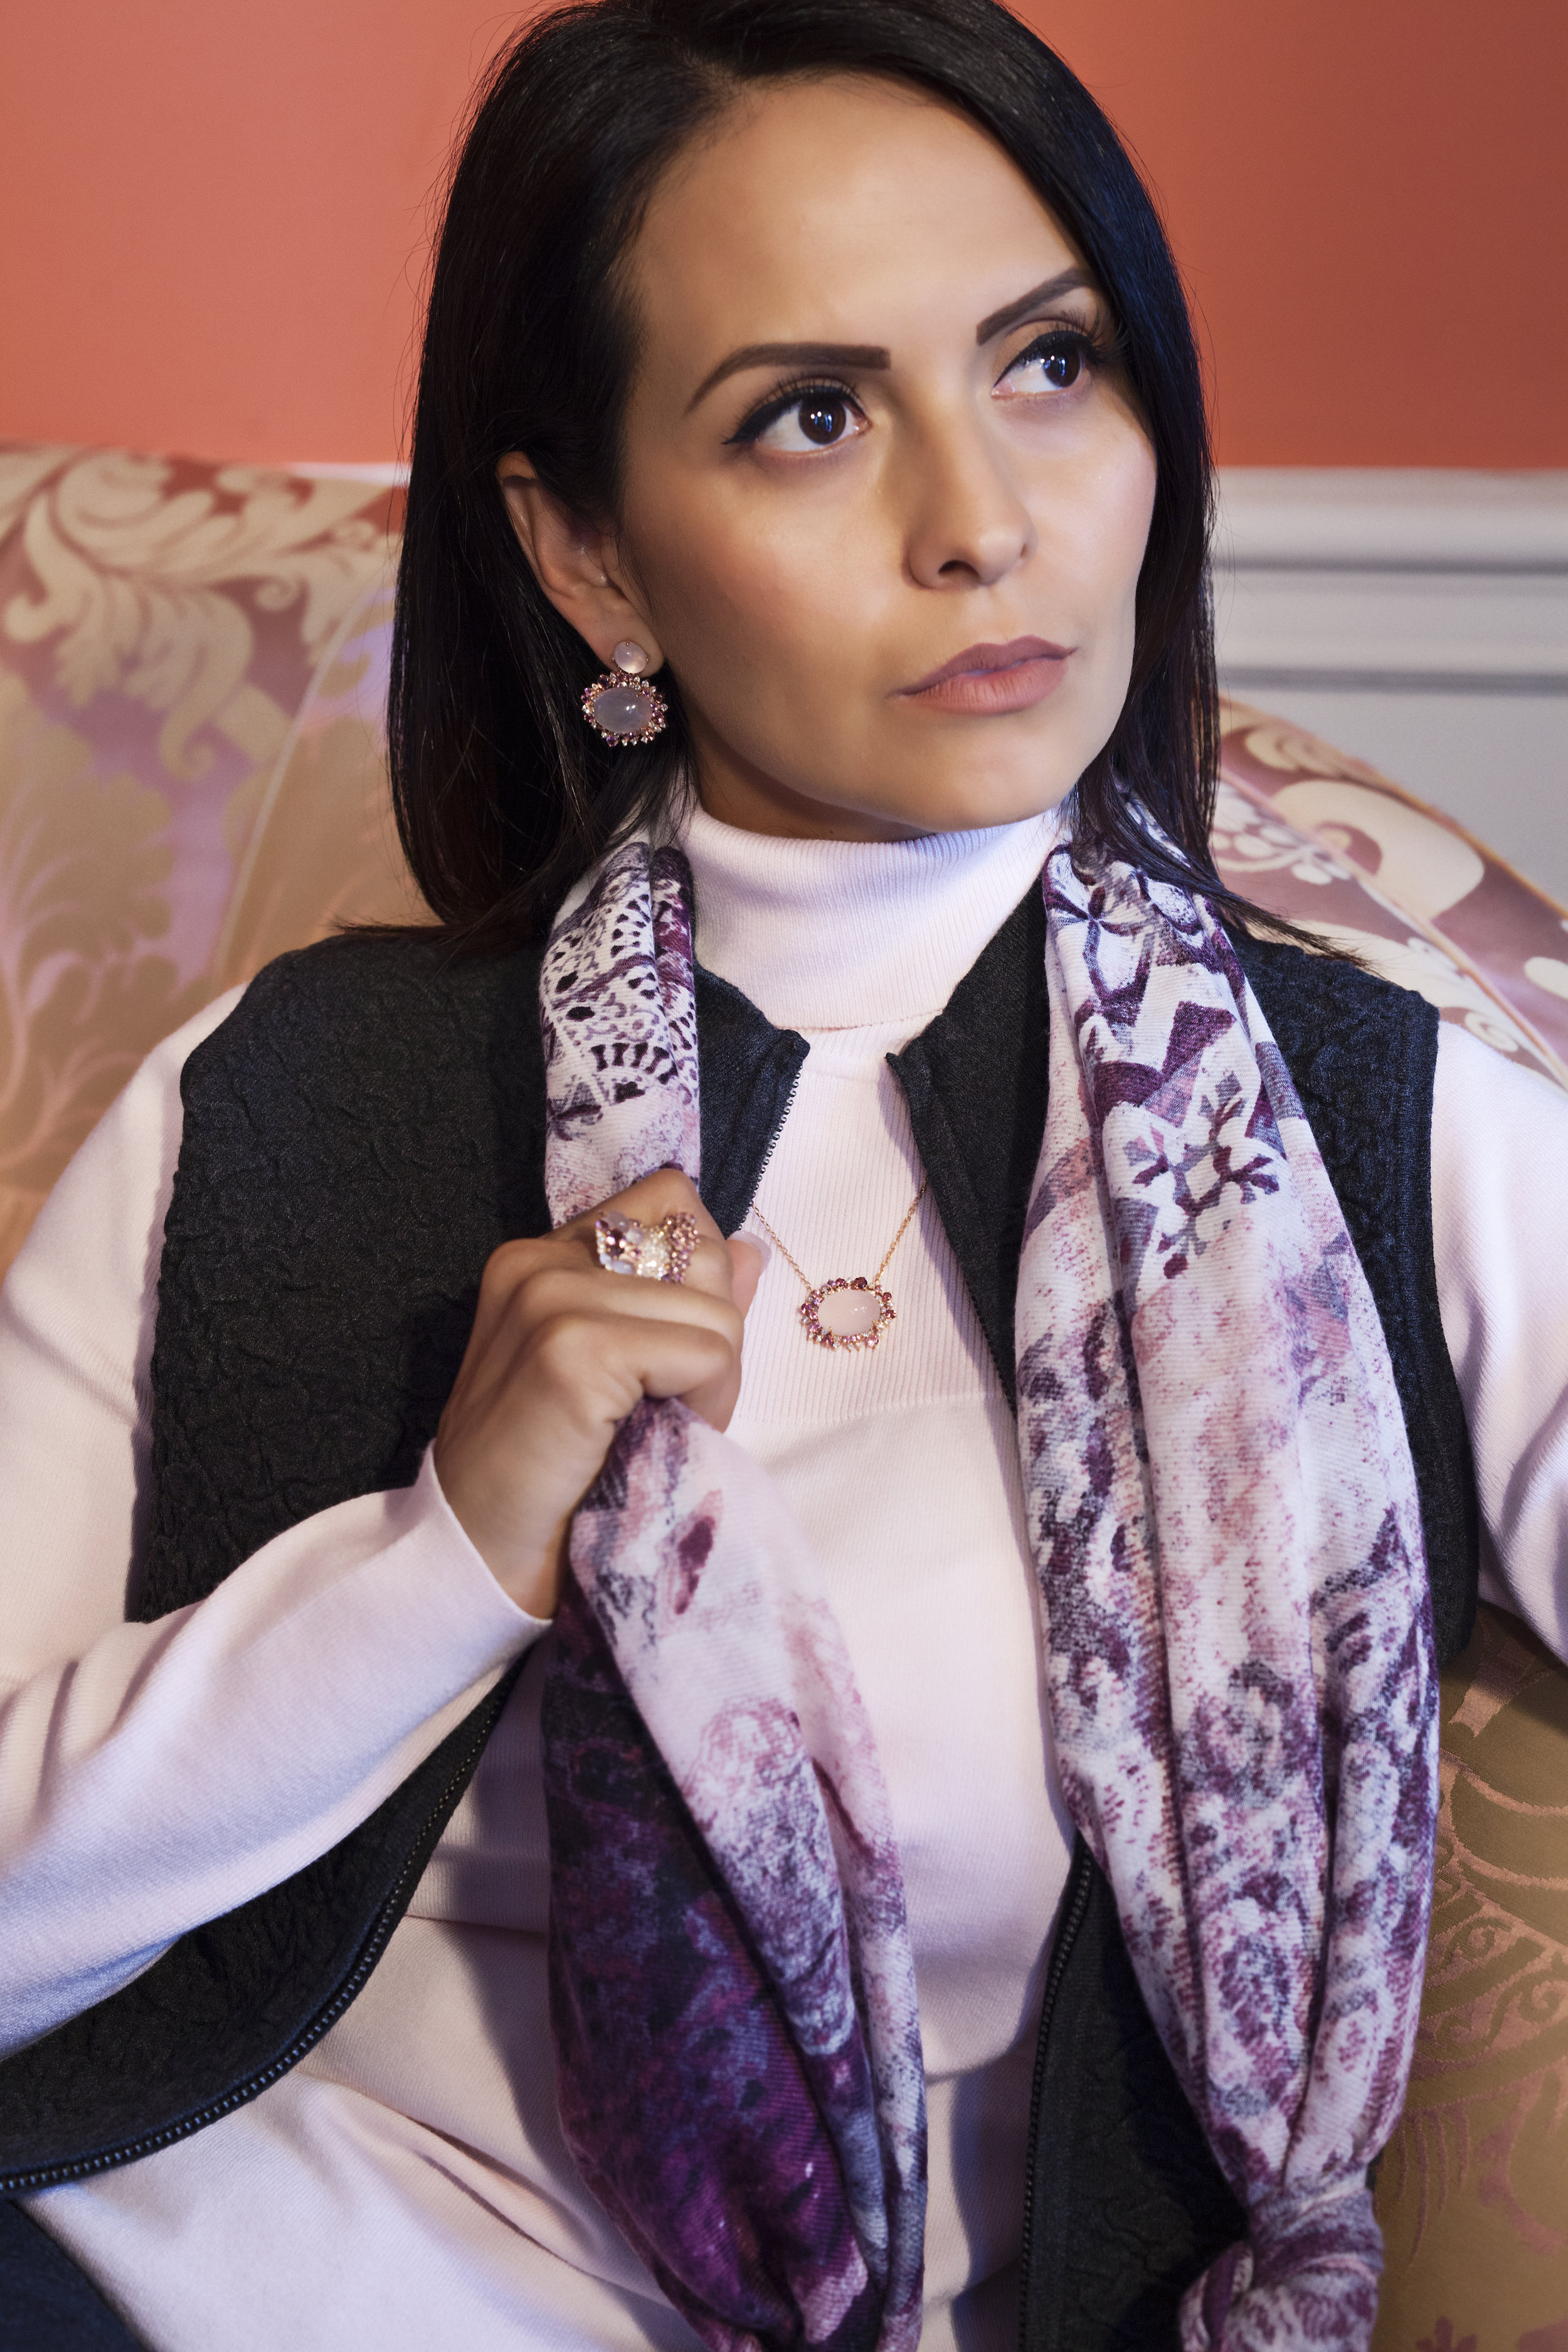 Jewelry: Brumani Baobab Collection -  Diamond, Rose Quartz, Pink Tourmaline in 18k Rose Gold: Earrings - $9,838, Necklace - $4,385, Cocktail Ring - $11,345  -Greenbrier Avenue jeweler